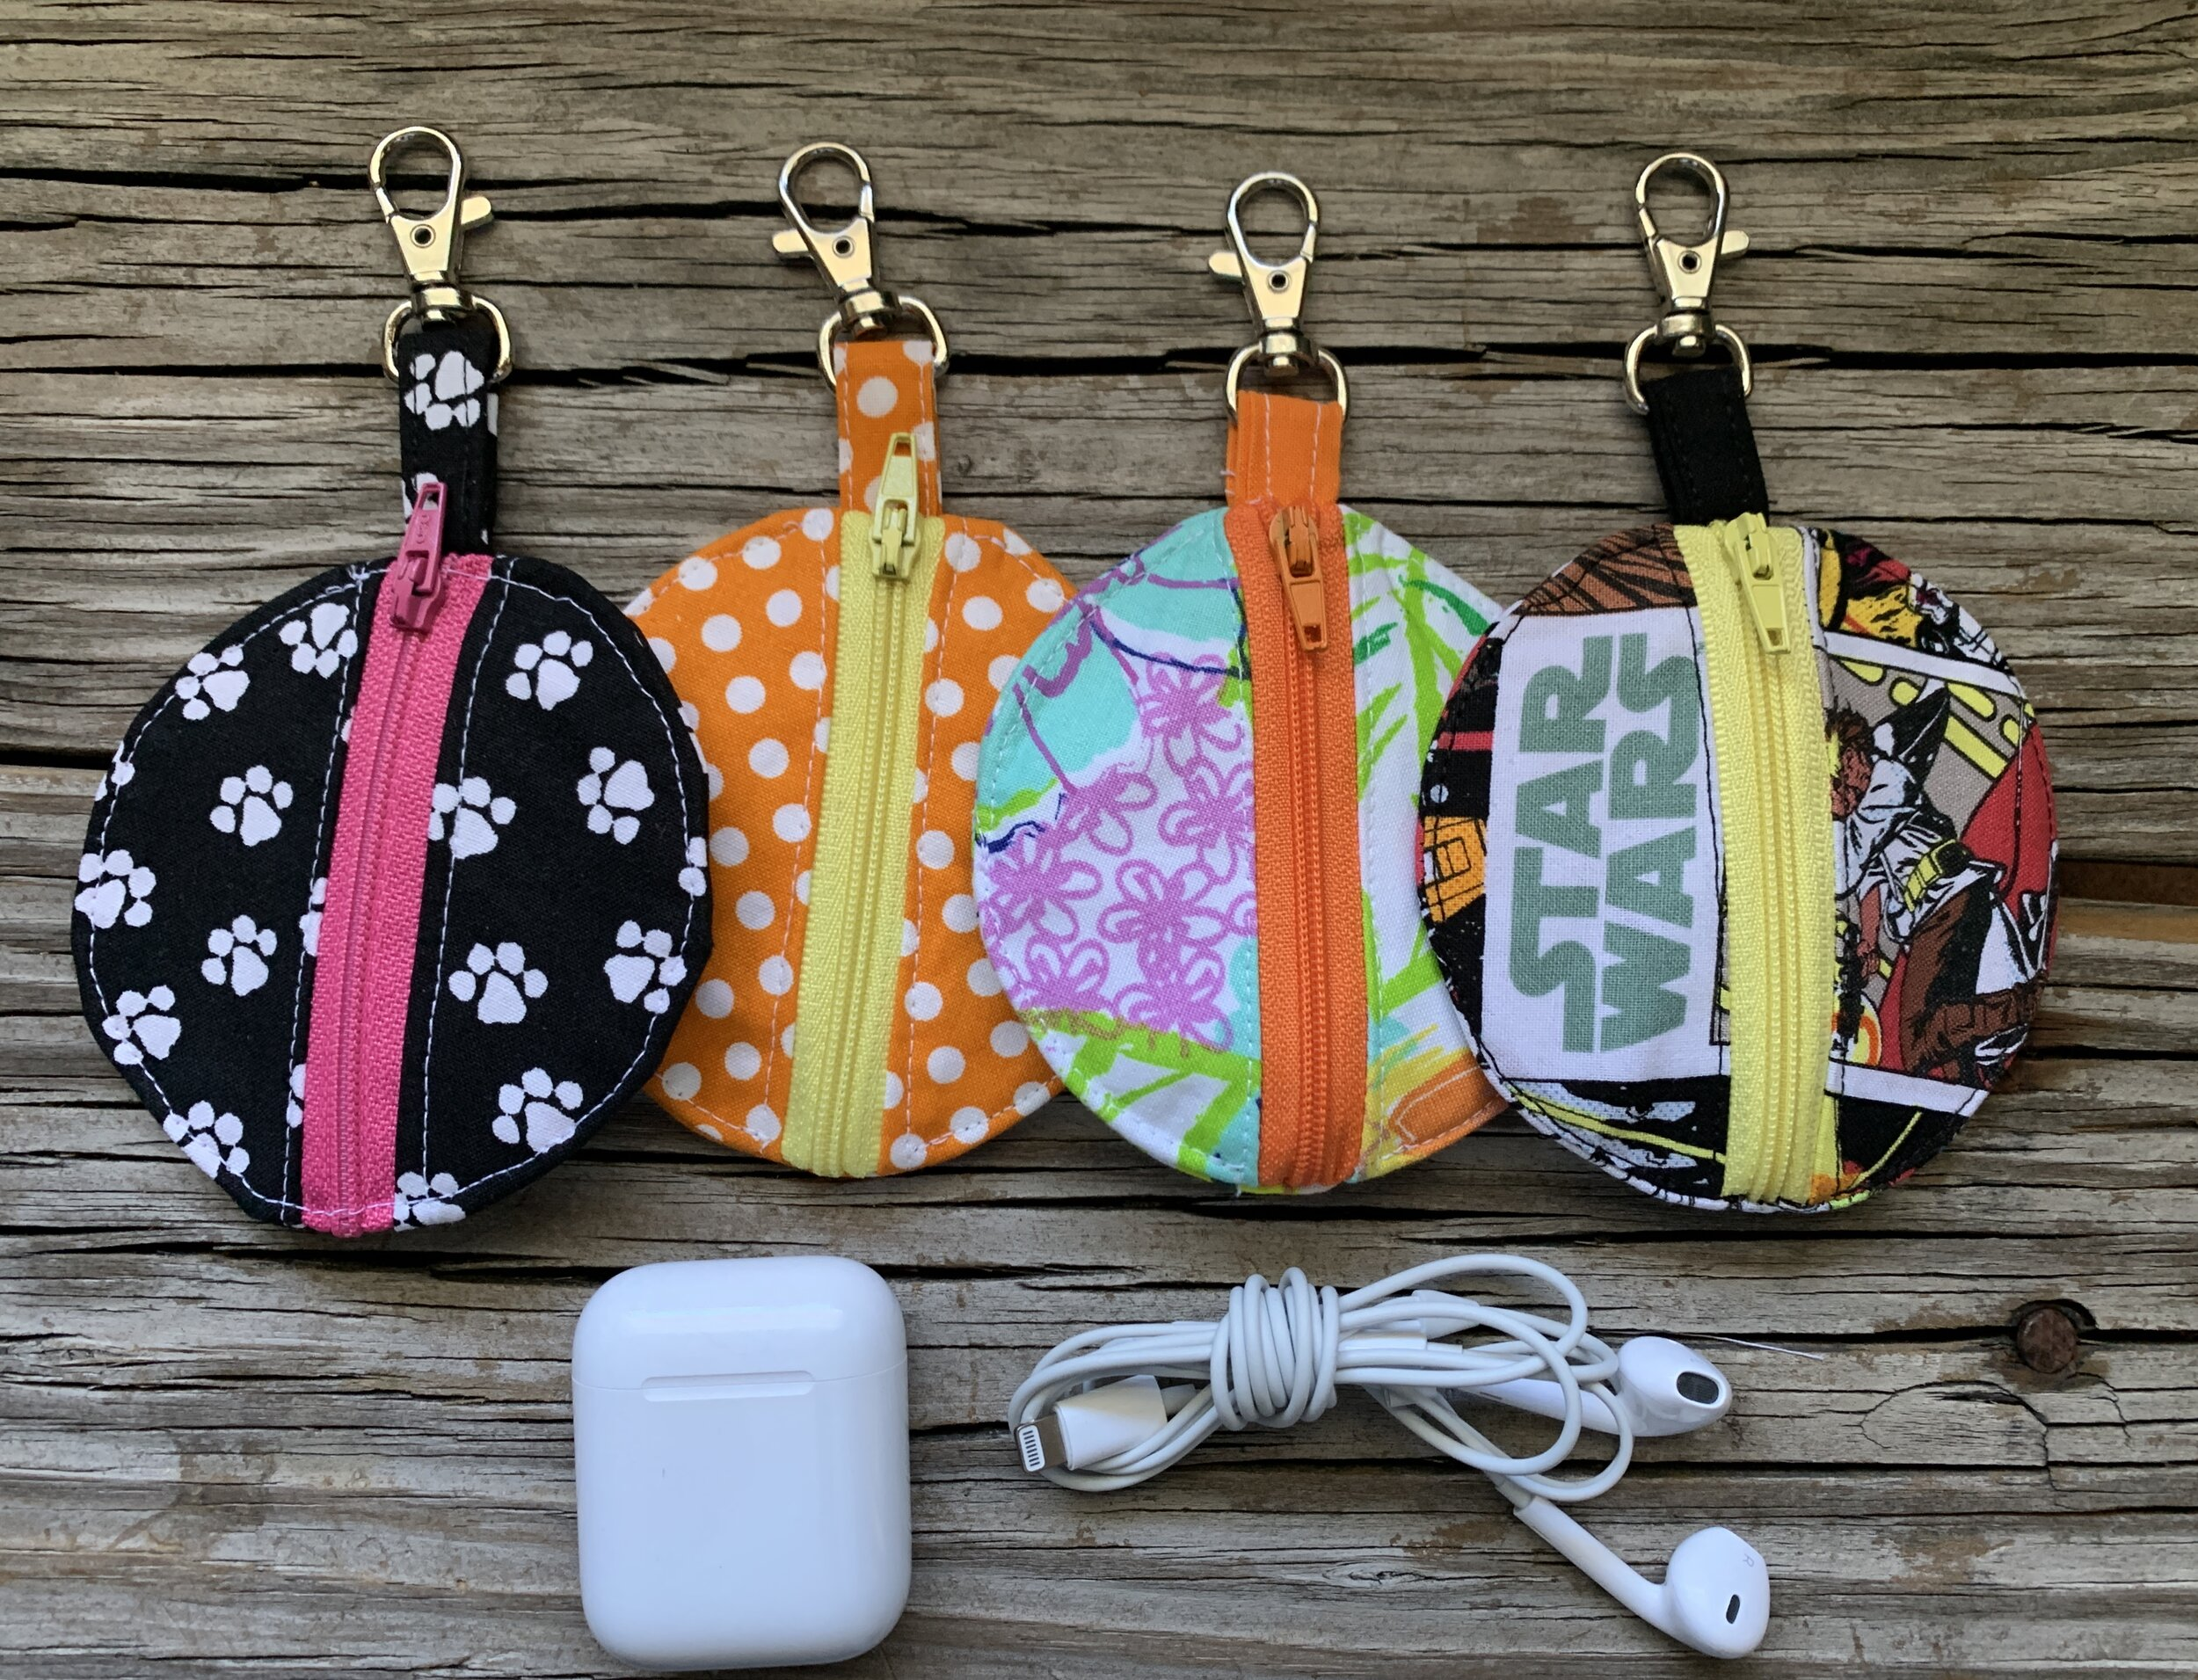 Earphone pouches to clip anywhere. These work great for traditional earphones as well and wireless air pods.